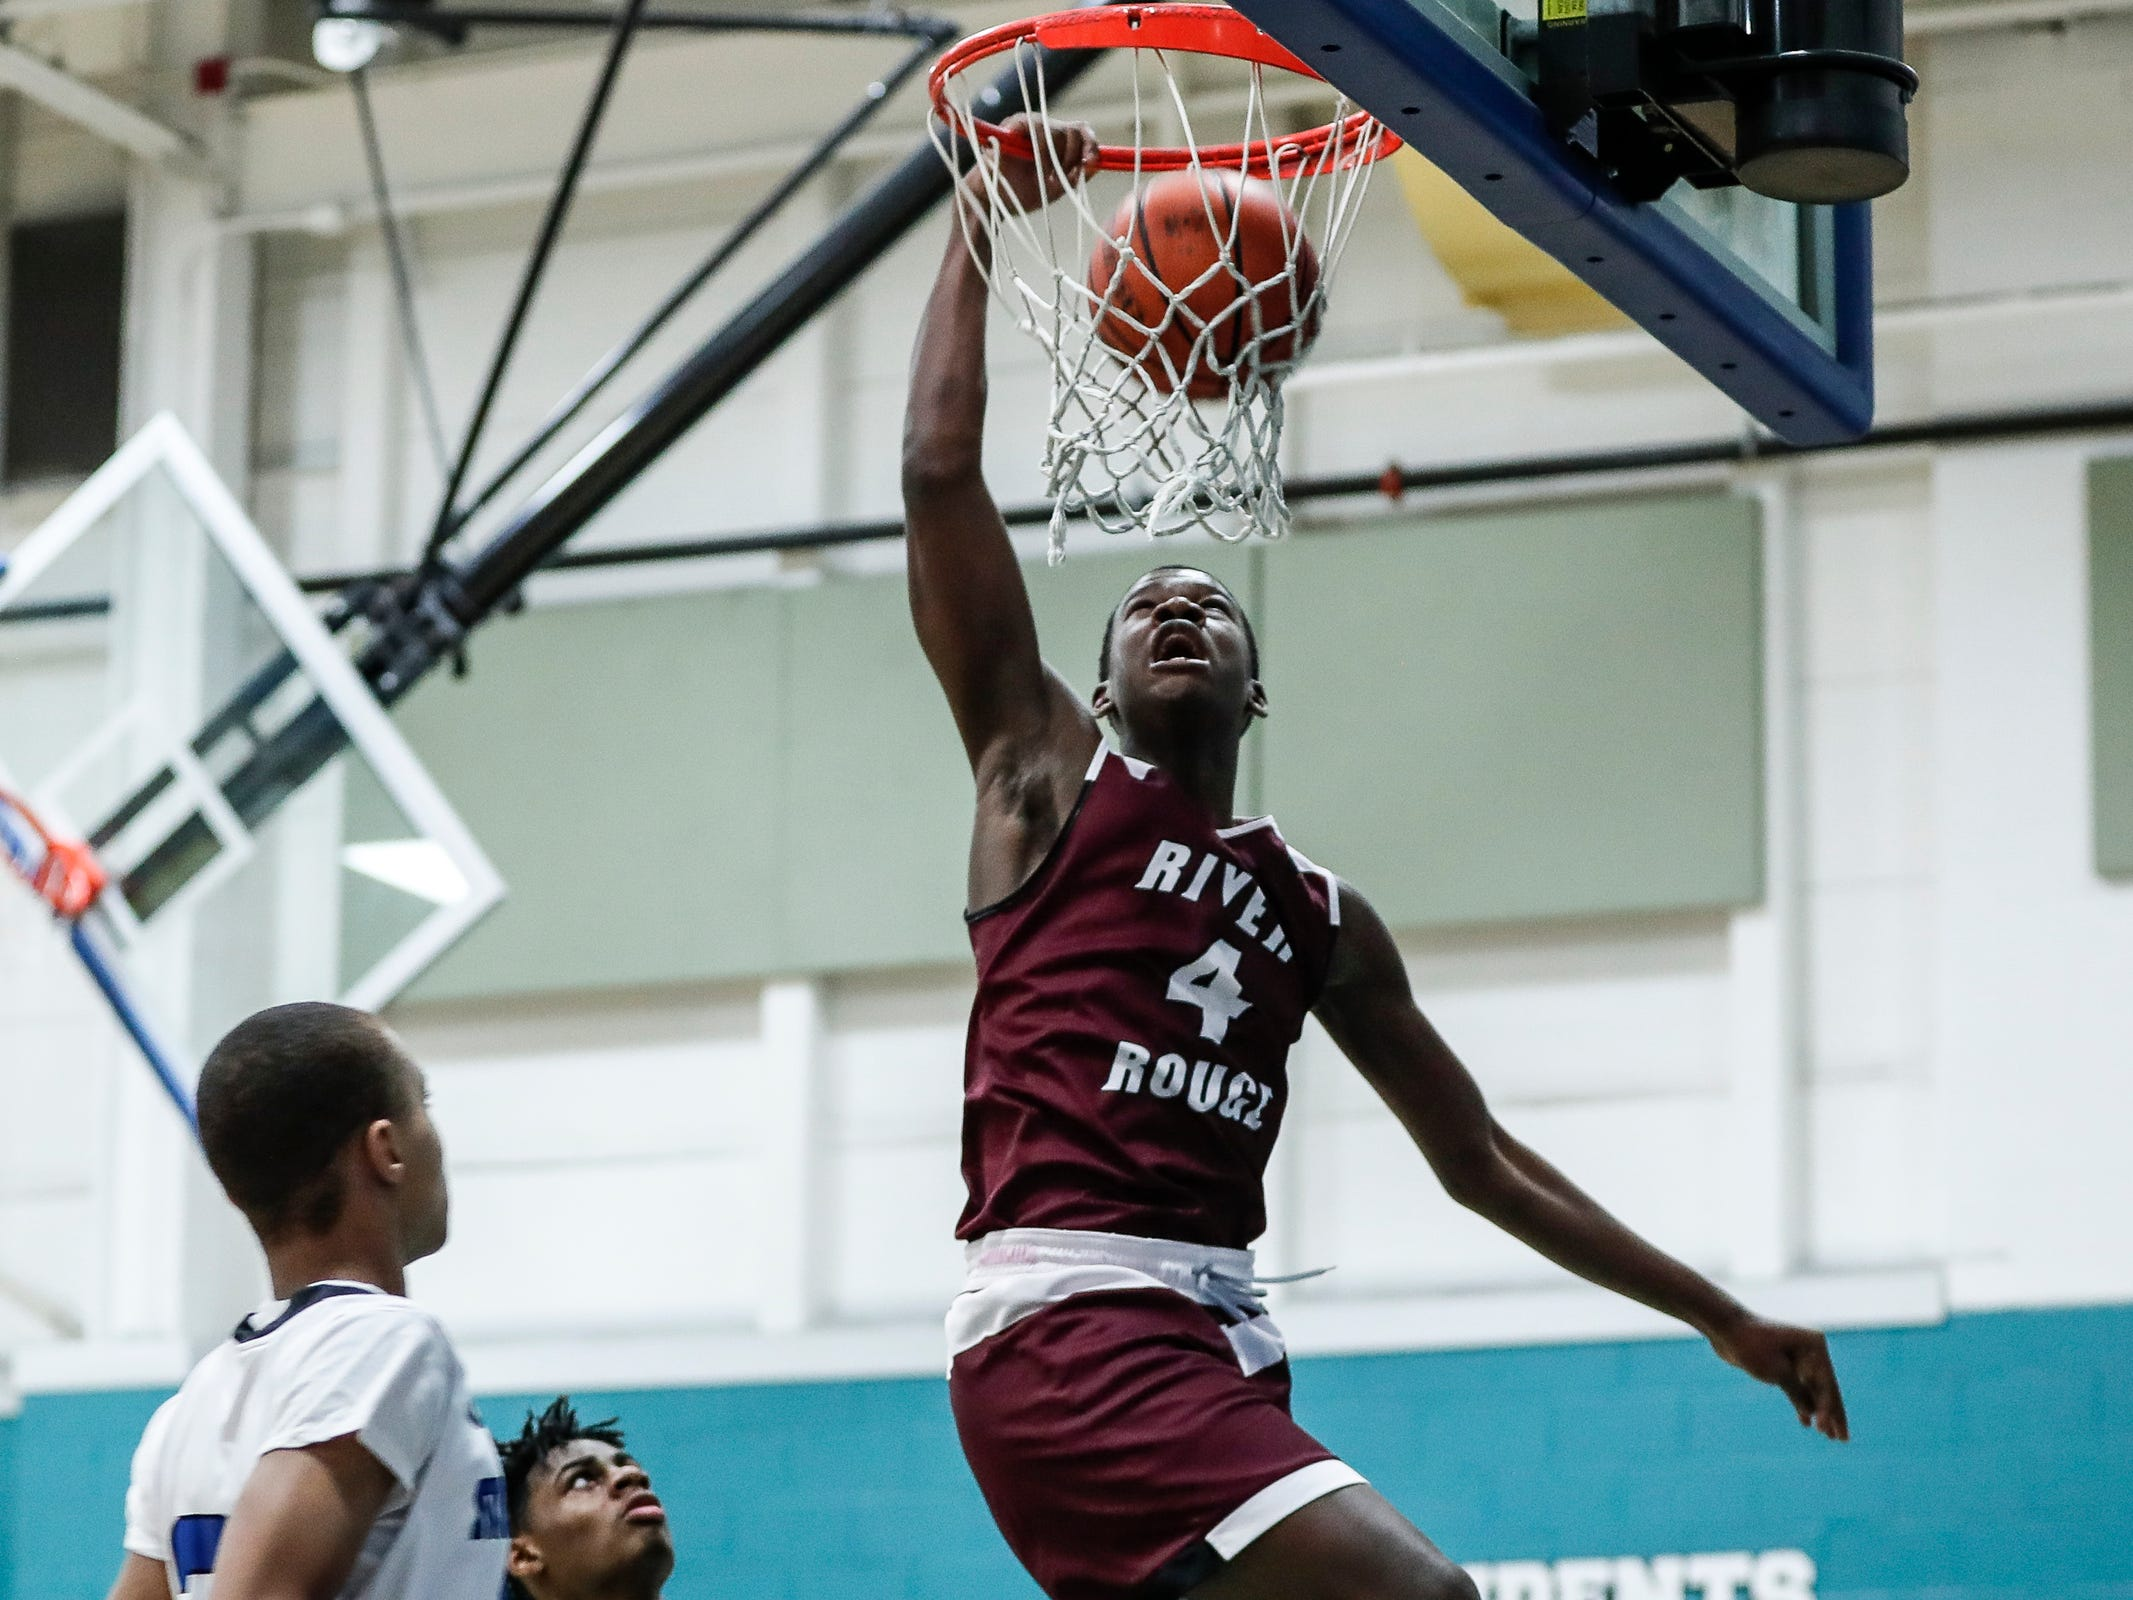 River Rouge small forward Legend Geeter (4) dunks against Henry Ford Academy: School for Creative Studies during first half at the A. Alfred Taubman Center For Design Education in Detroit, Tuesday, Jan. 8, 2019.